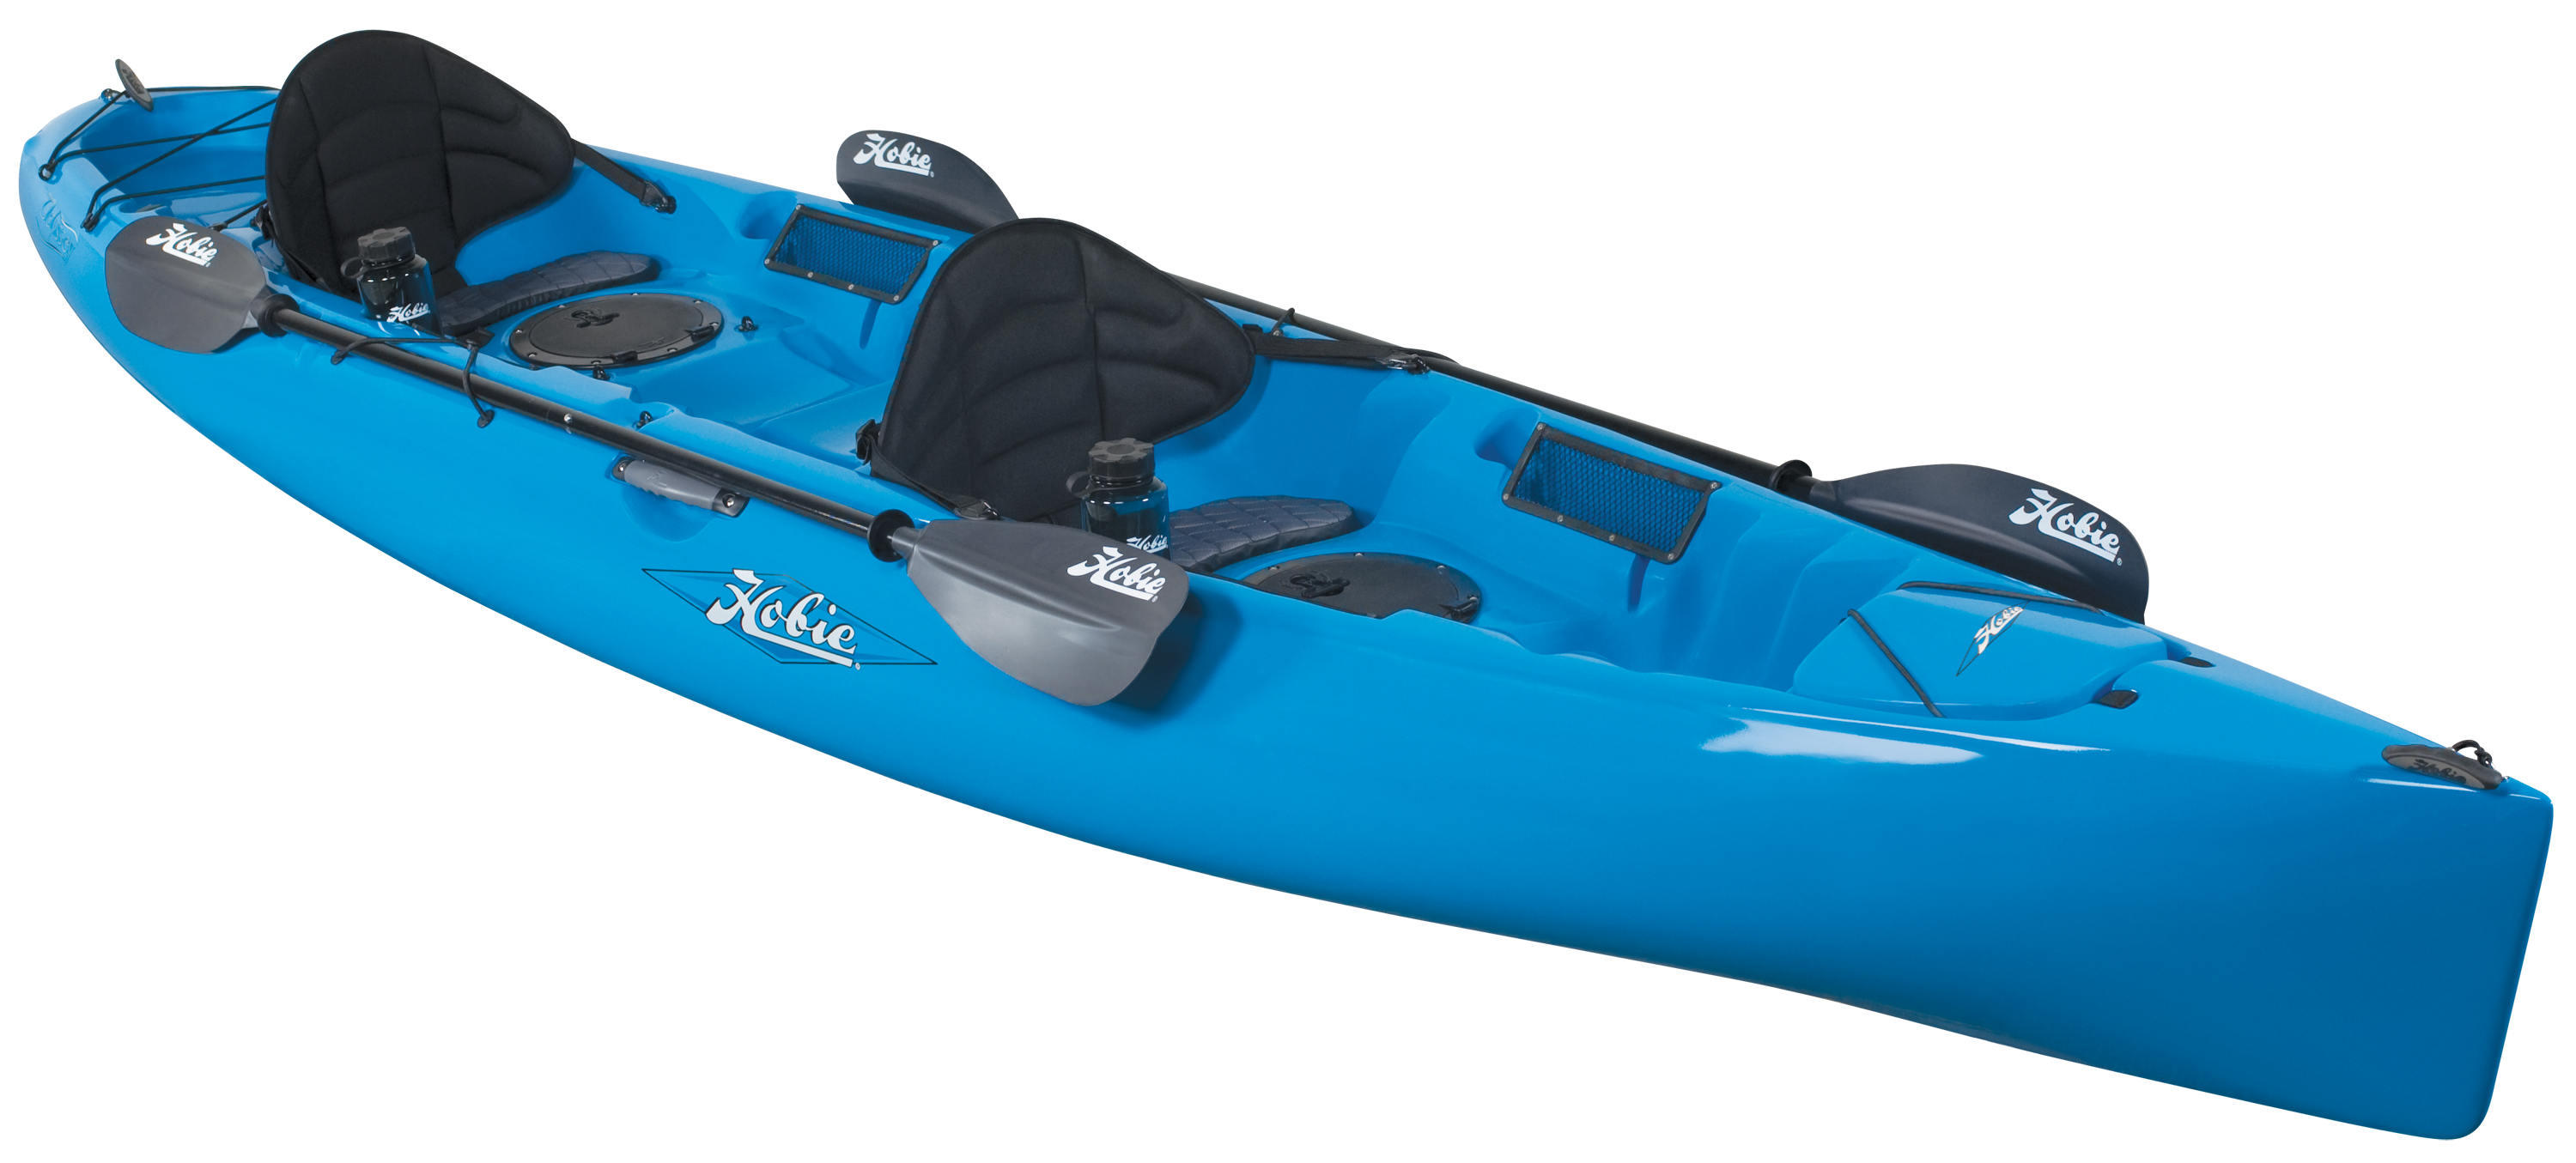 Hobie cat introduces two tandem kayaks to arsenal of for Best tandem fishing kayak